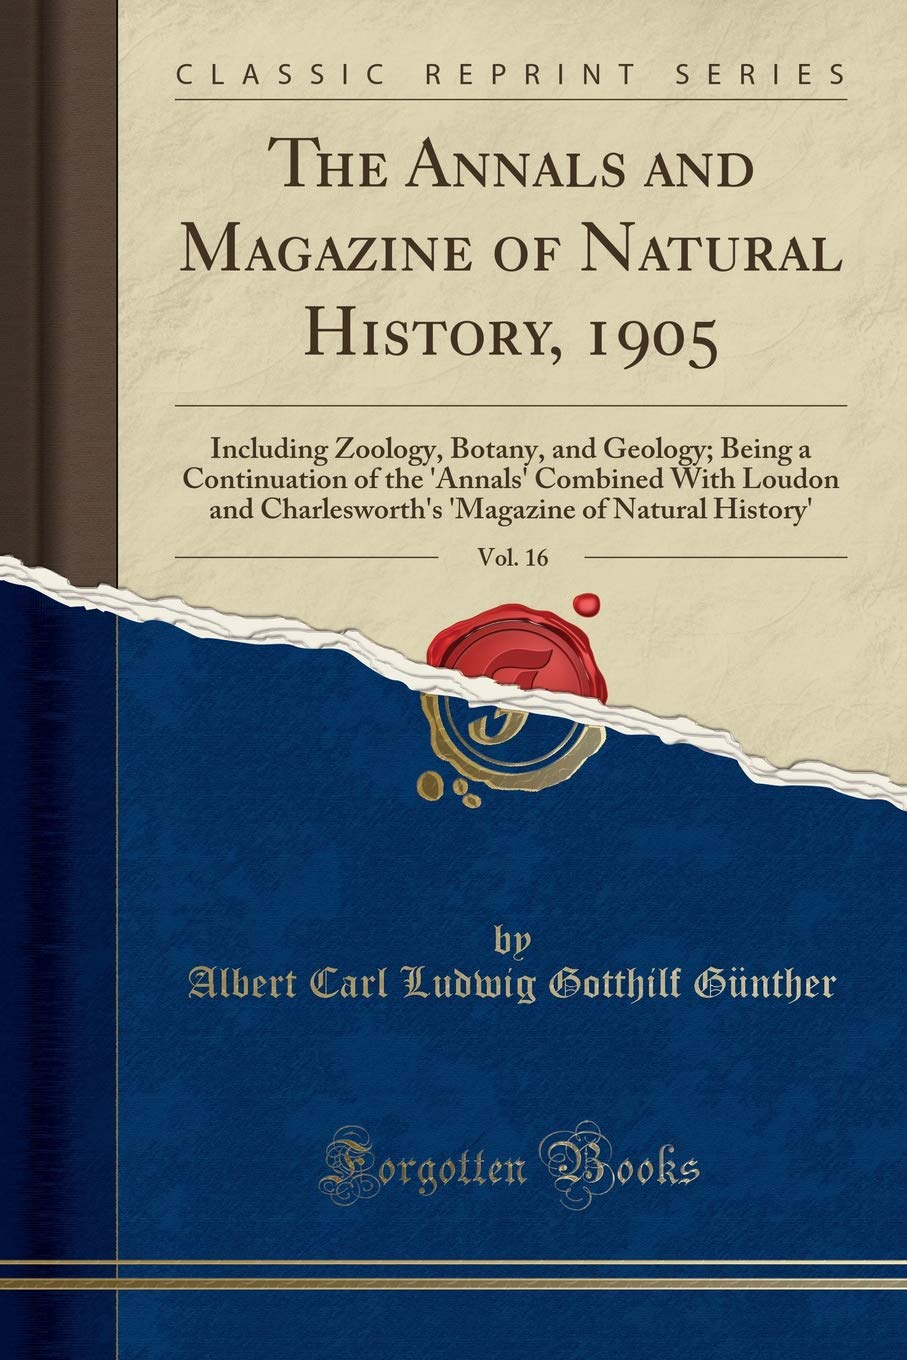 Download The Annals and Magazine of Natural History, 1905, Vol. 16: Including Zoology, Botany, and Geology; Being a Continuation of the 'Annals' Combined With ... of Natural History' (Classic Reprint) PDF